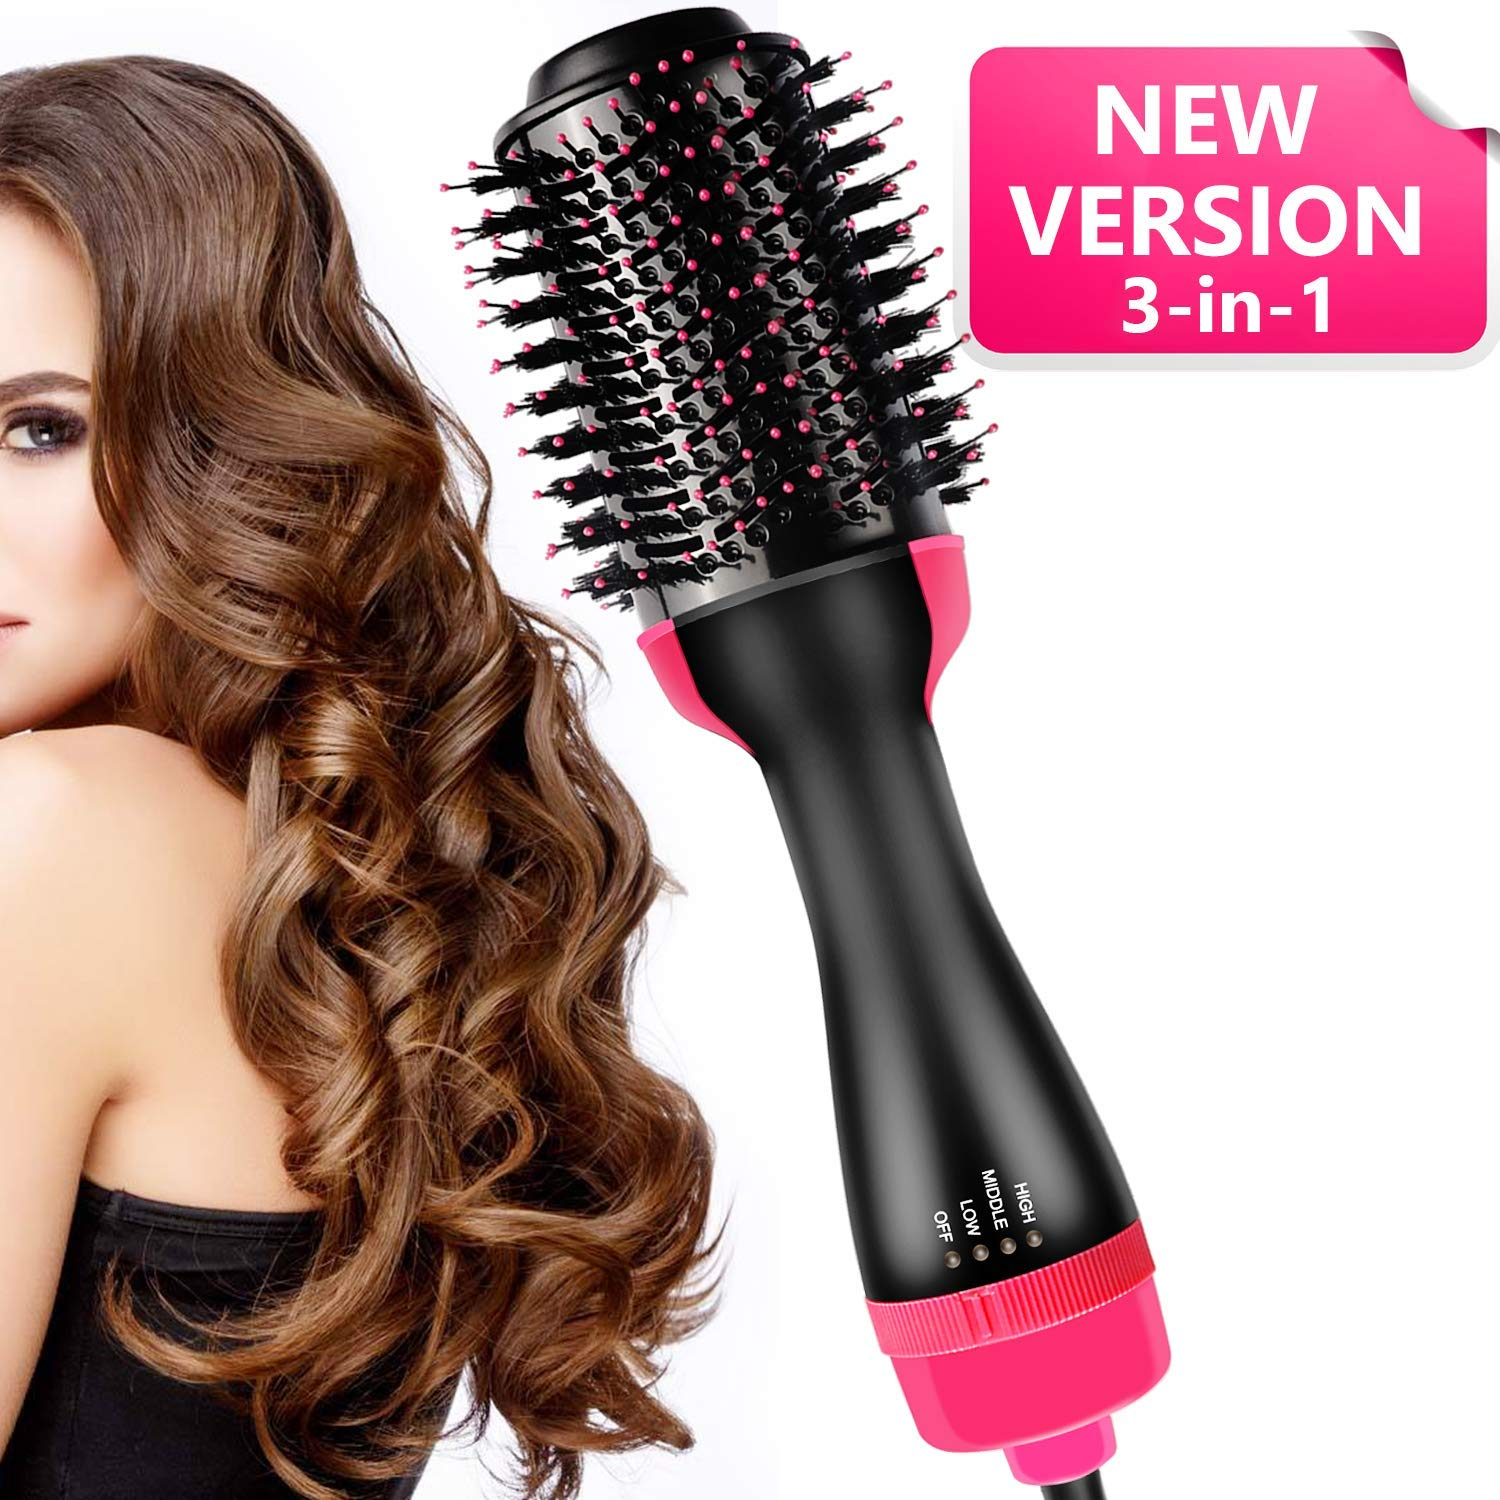 LINCloud Hot Air Brush One Step 3 in 1 Negative Ion Hair Straightener Brush Hair Dryer Volumizer for Drying, Straightening, Curling with 3 Heat Setting for All Hair Types